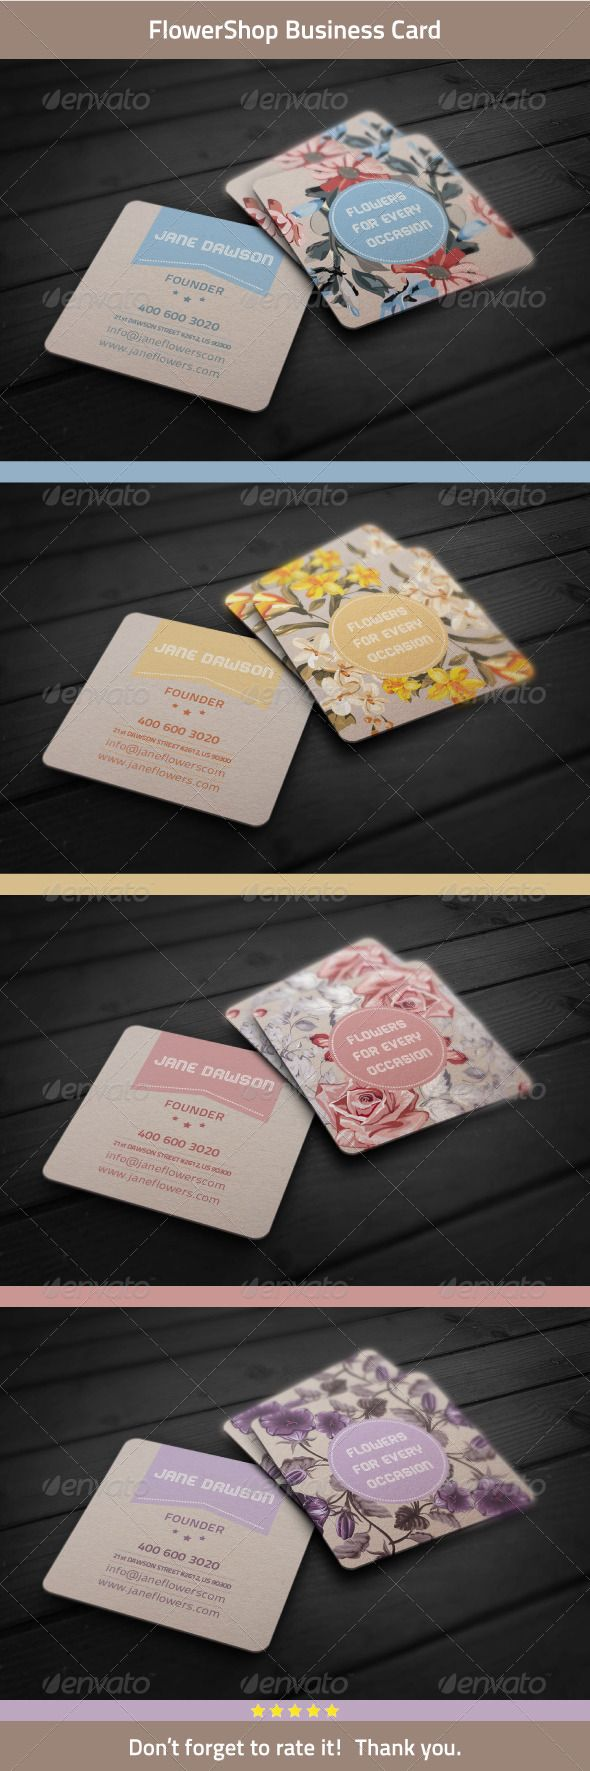 Flower Shop Business Card - GraphicRiver Item for Sale